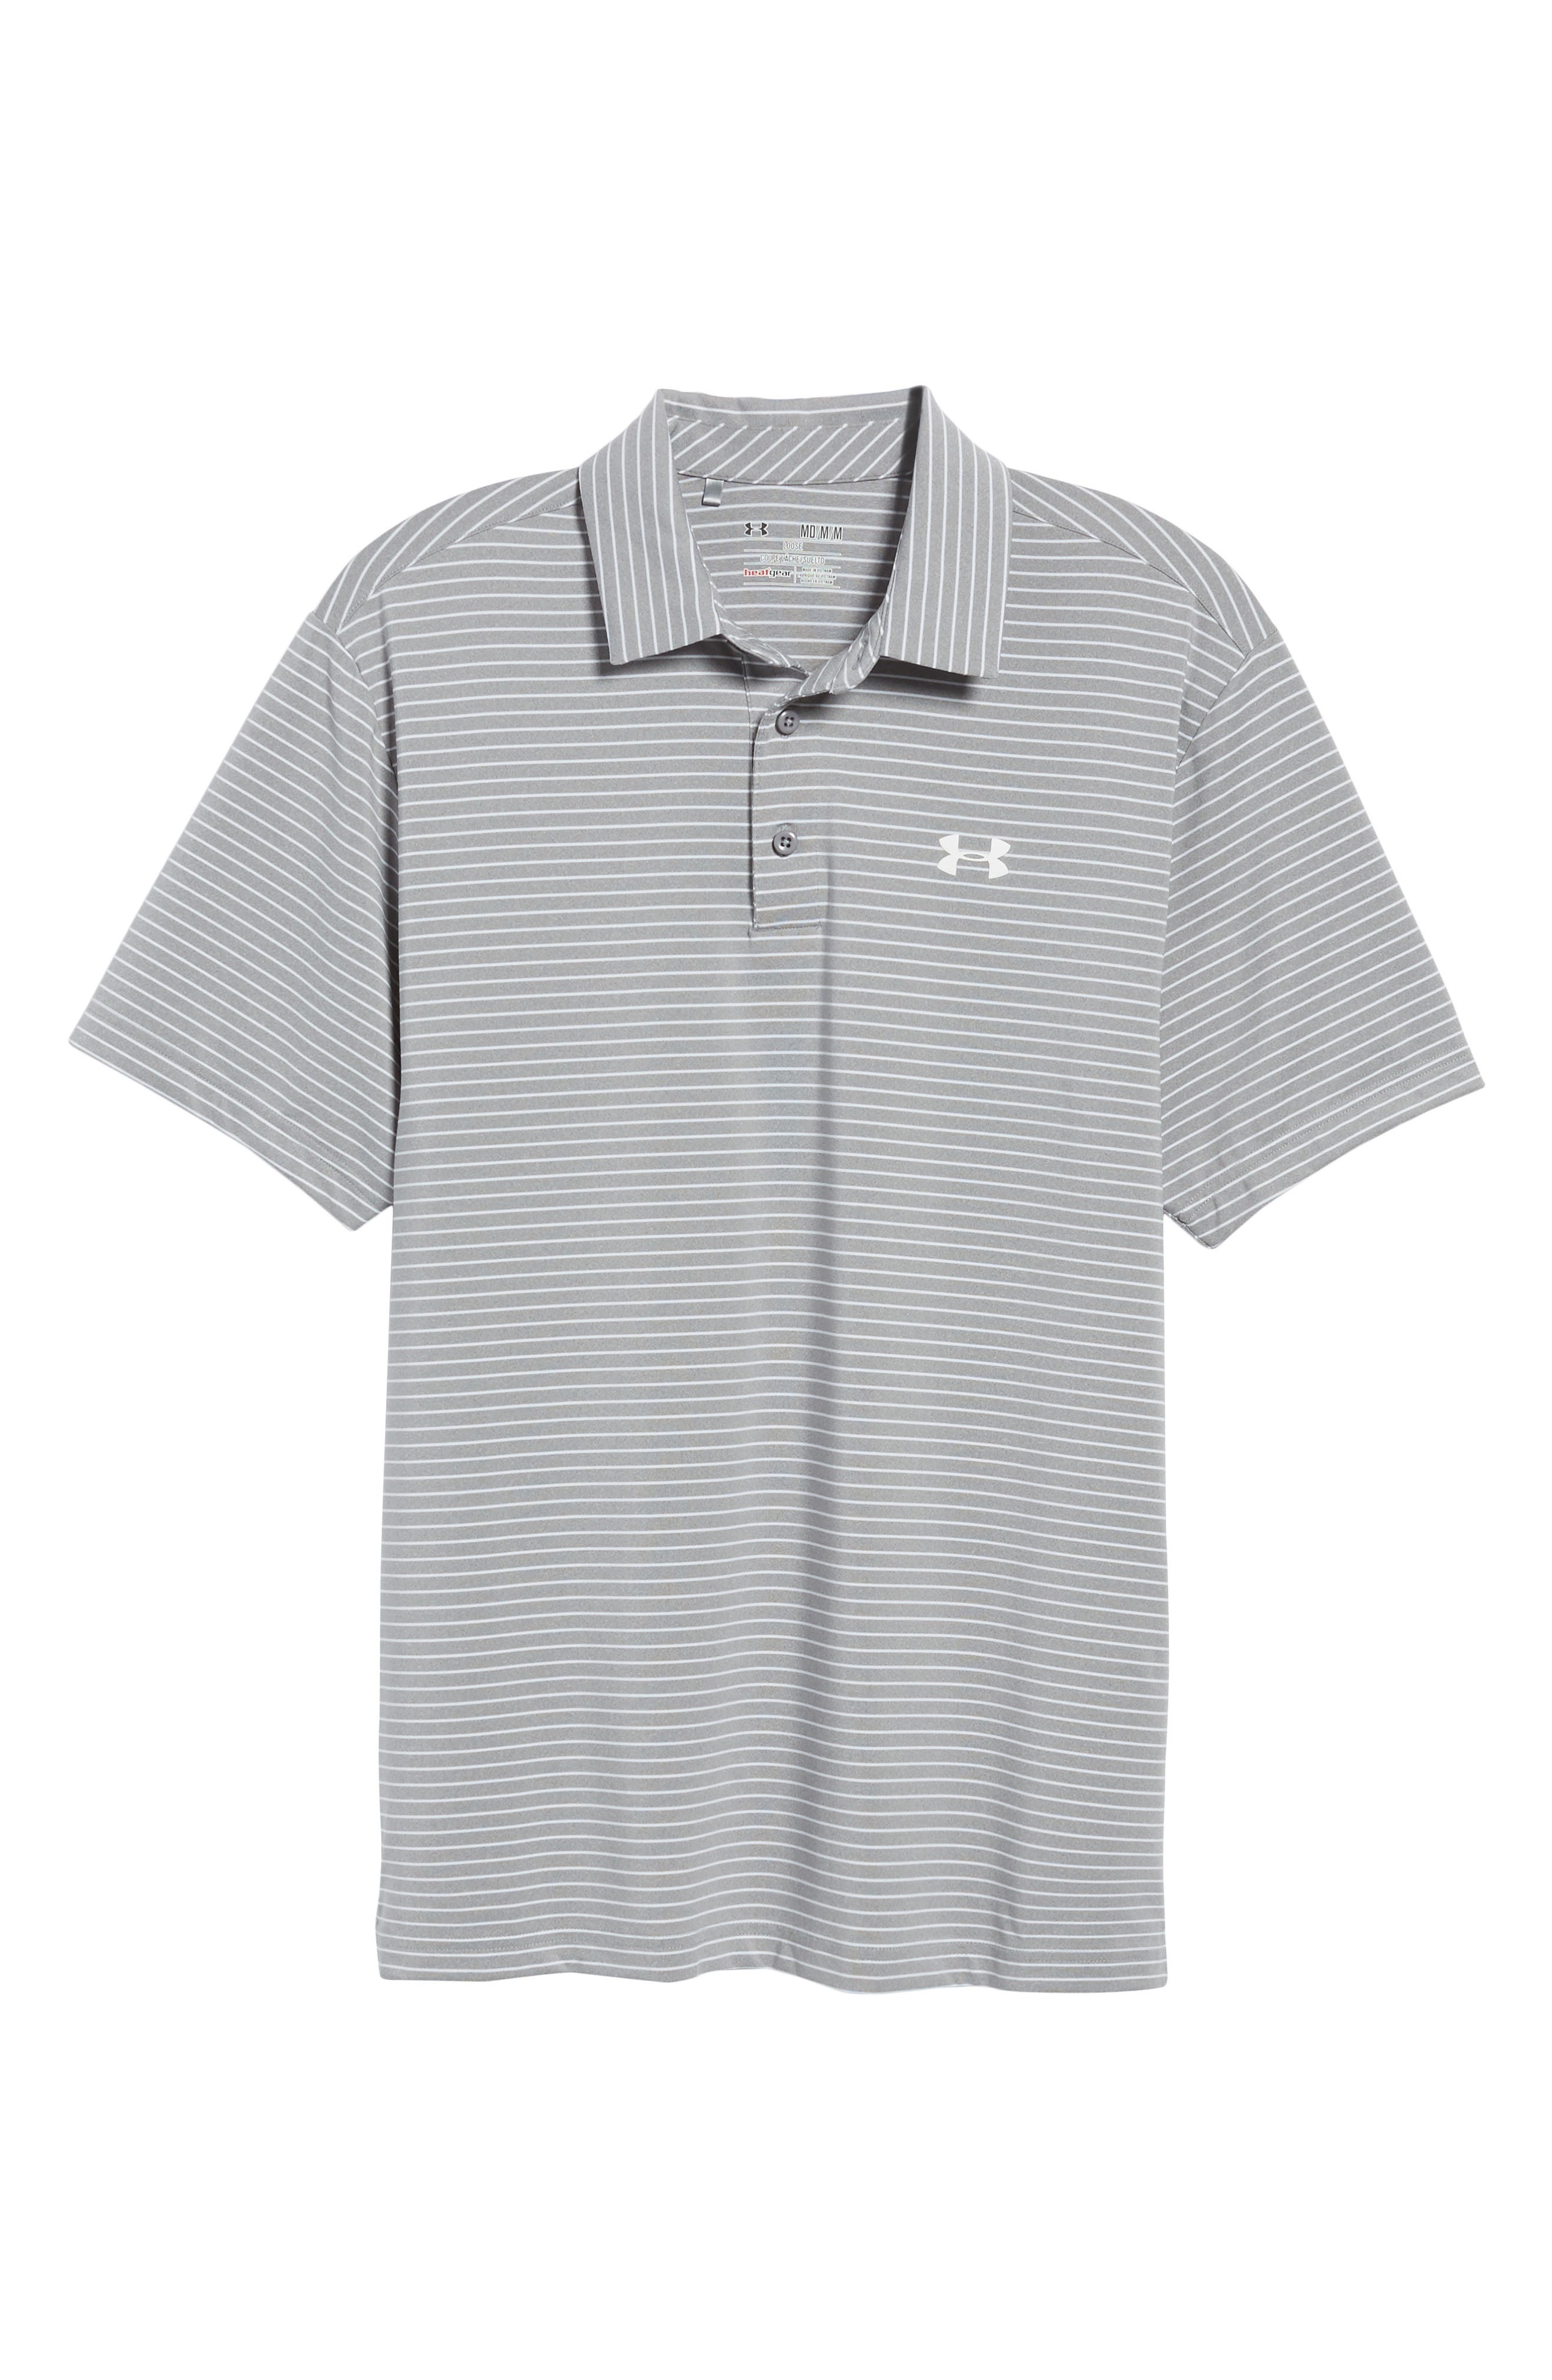 'Playoff' Loose Fit Short Sleeve Polo,                             Alternate thumbnail 6, color,                             TRUE GREY HEATHER/ WHT STRIPE